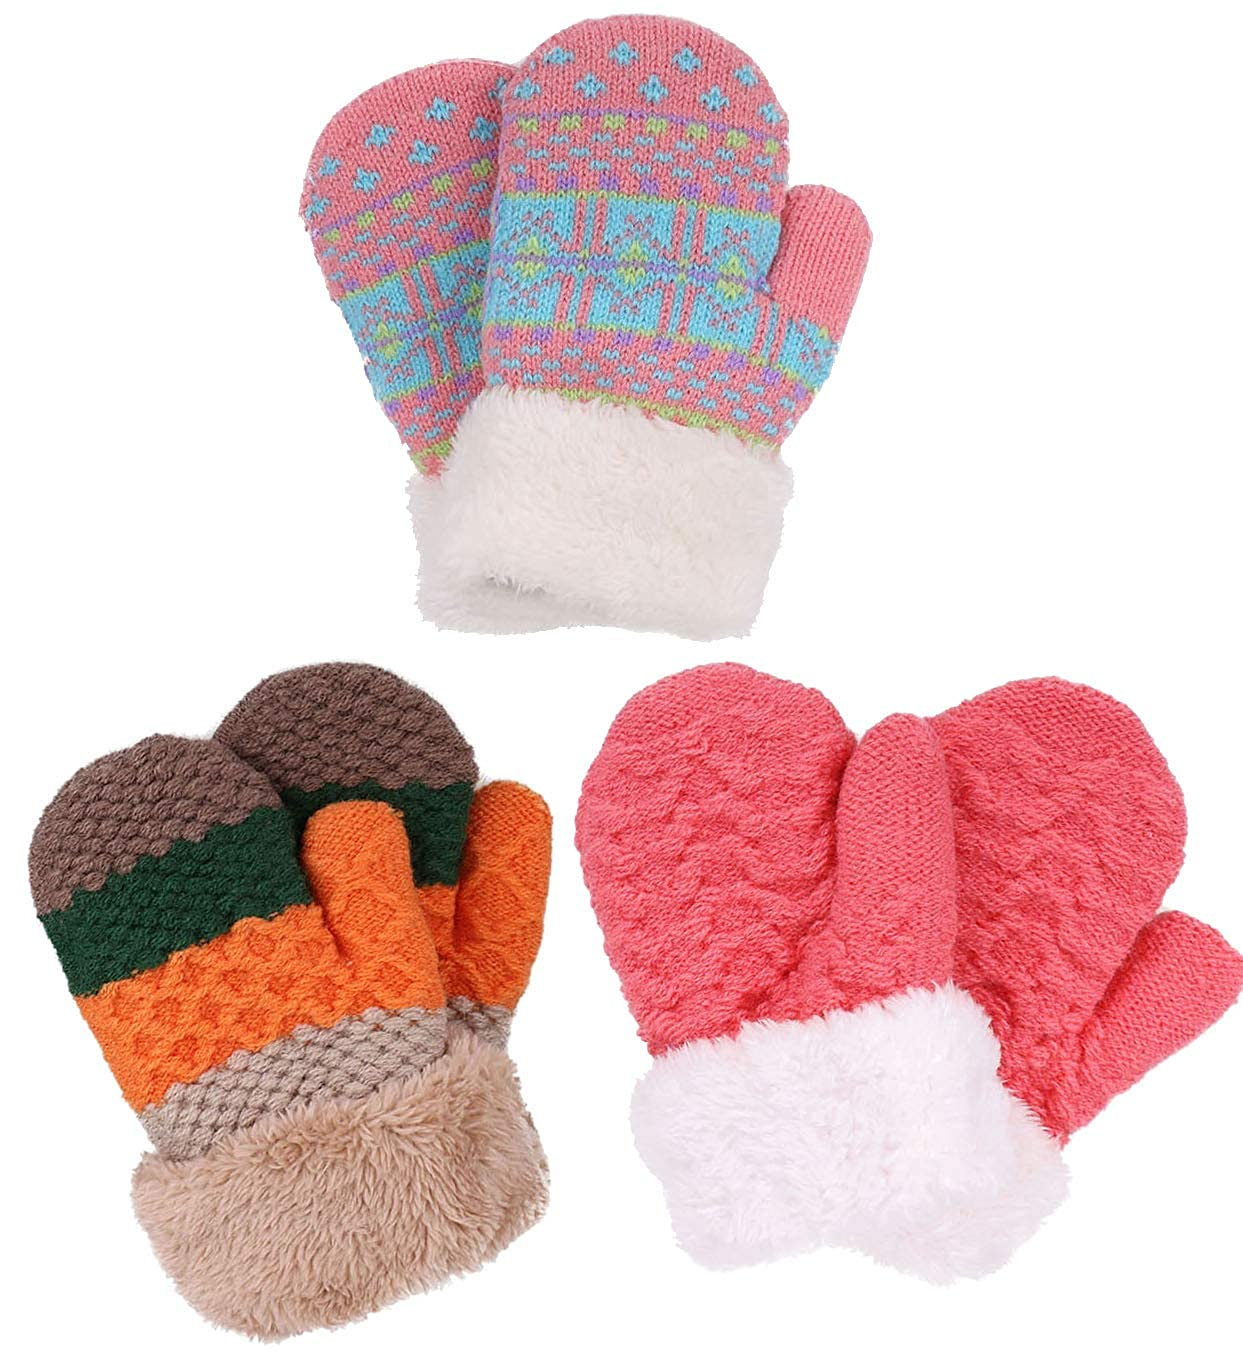 Verabella Boys & Girl's Sherpa Lined Fuzzy Cuff Winter Mittens Kids Knitted Gloves 3 Pairs